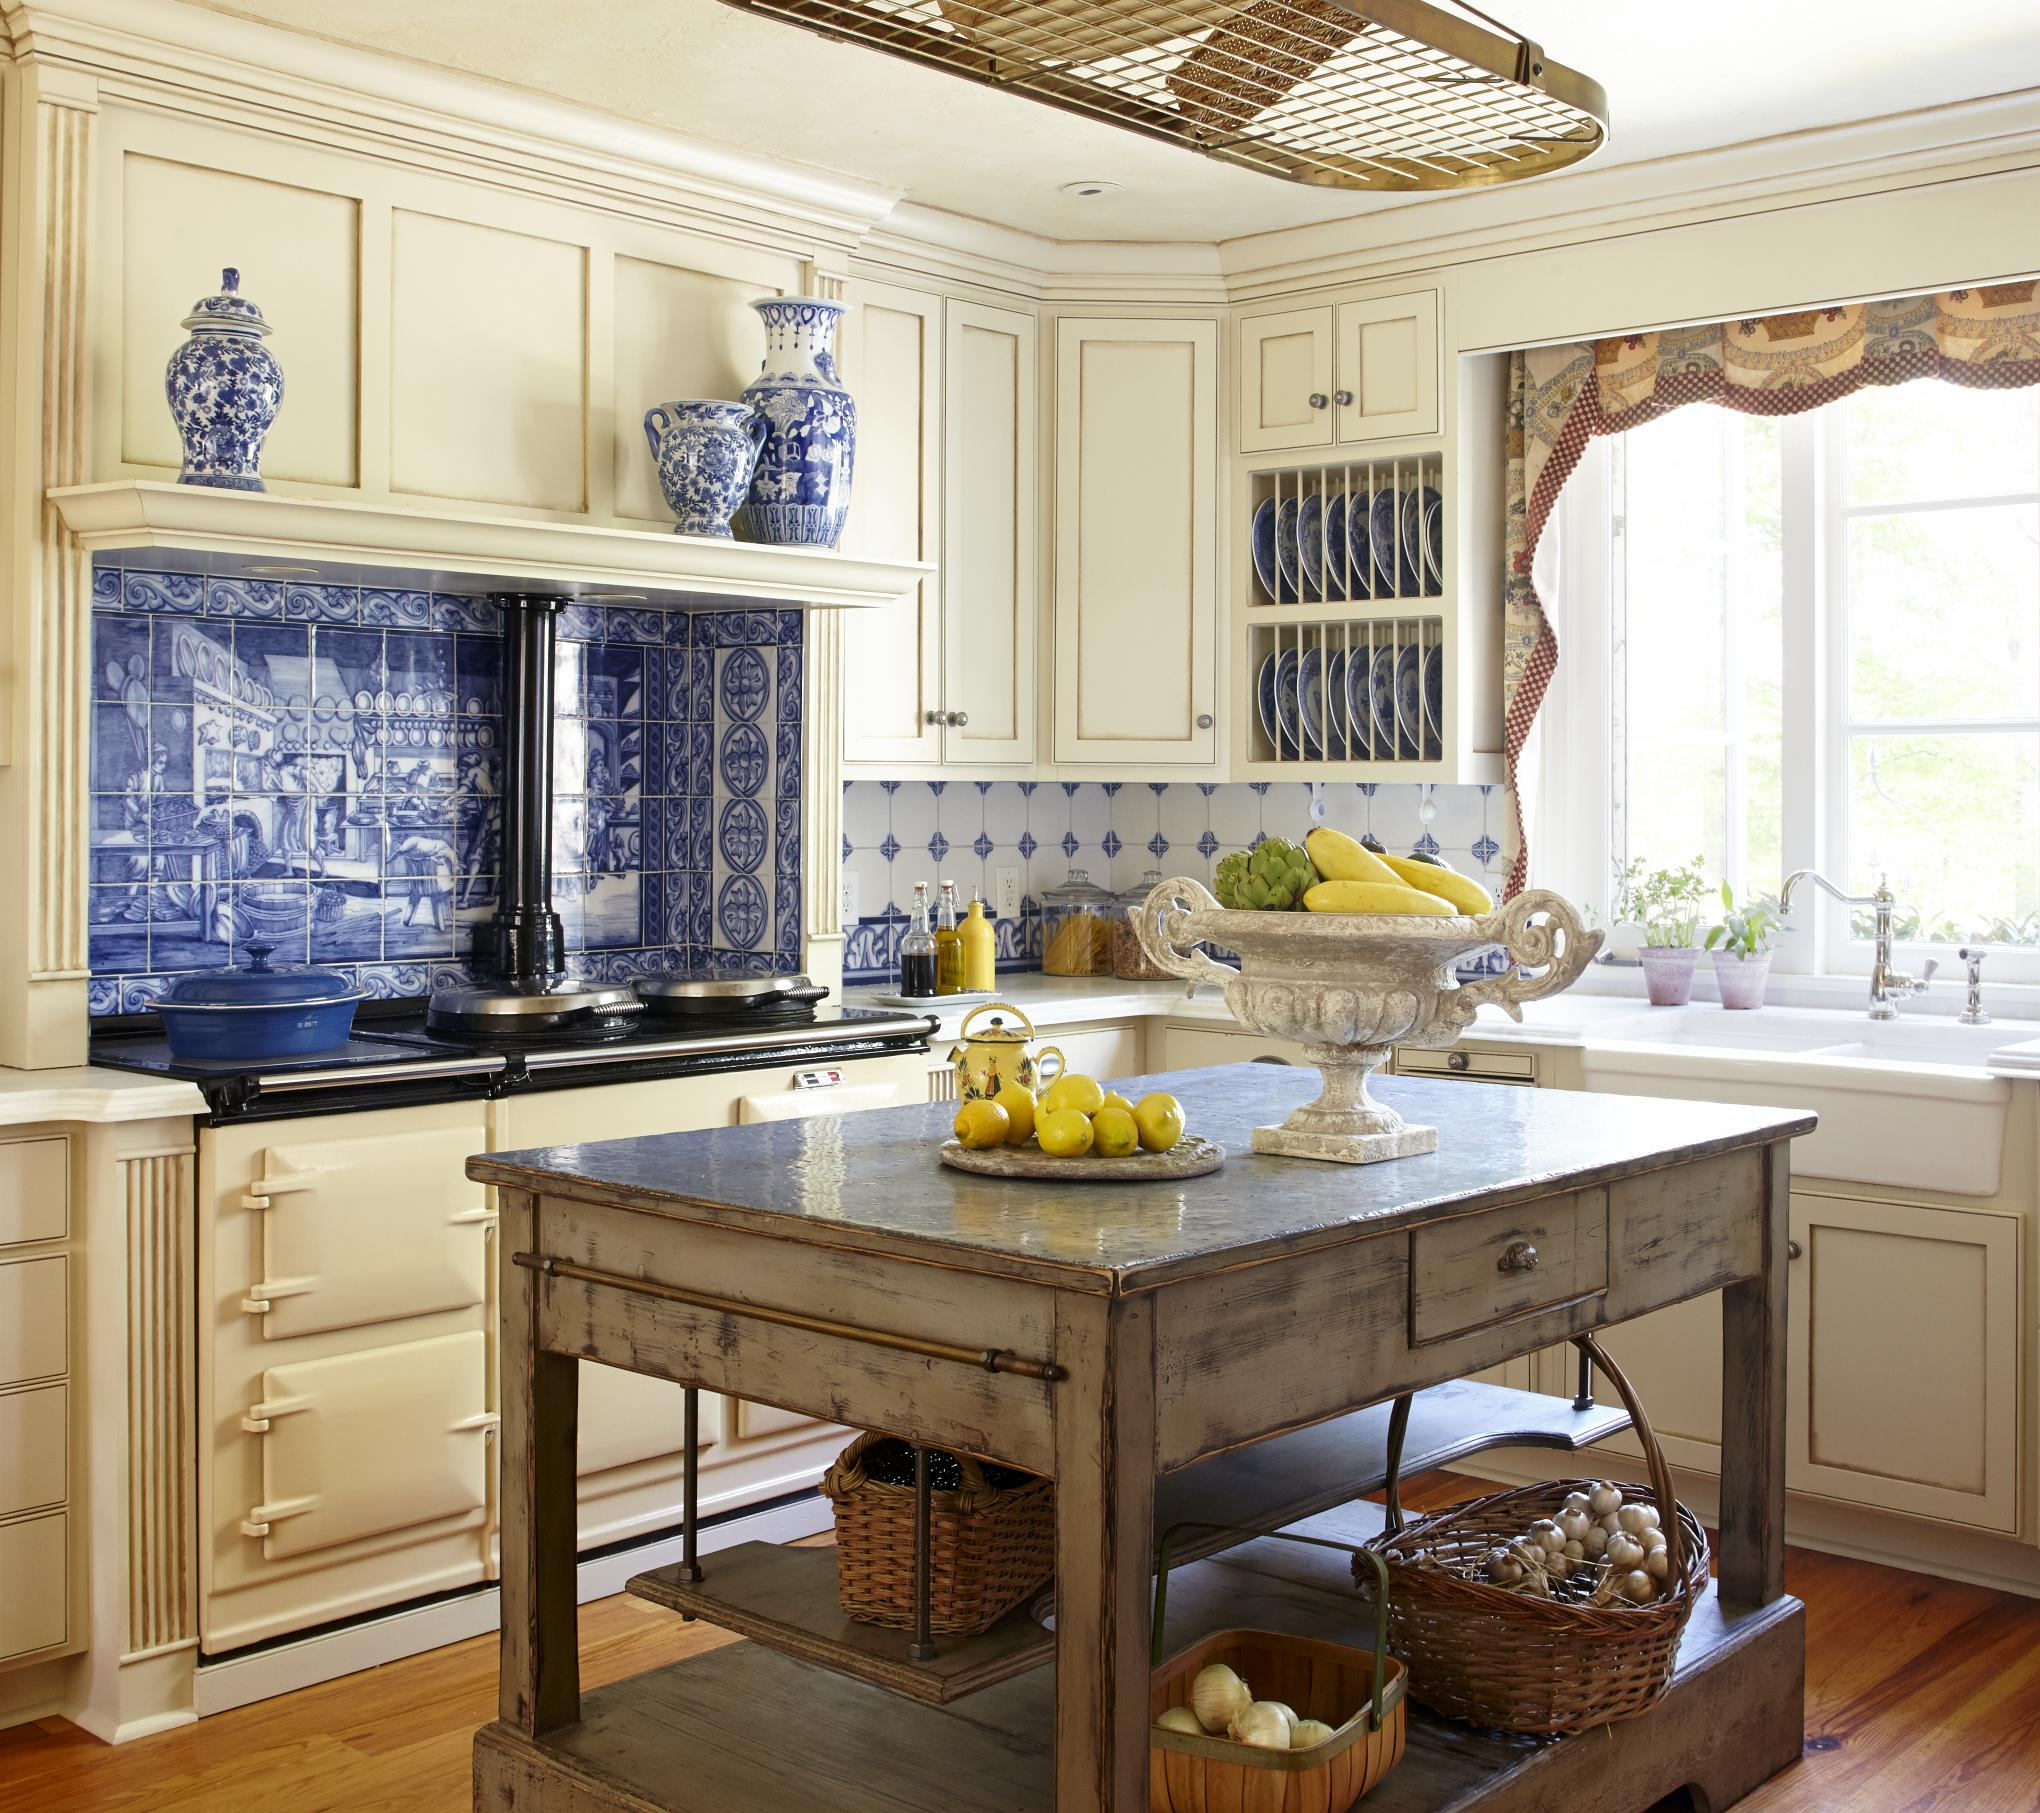 Country French Kitchens | Traditional Home on design kitchen pantry, french building design, french contemporary design, kitchen design layout, french toilet design, french country living room ideas, best design kitchen, custom kitchen design, kitchen island design, colors kitchen, french christmas design, design kitchen restaurant, kitchen design software, french small garden design, french easel design, french fashion design, french bathroom, modern kitchen design, french courtyard design, free kitchen design, interior design, design kitchen traditional, country kitchen design, french traditional house design, kitchens by design, french outdoor design, design idea island kitchen, design gallery kitchen photo, french potager design, decorating kitchen, bathroom design, design kitchen luxury, french guest house design, design kitchen mediterranean, french molding design, french restaurant design, french balconies design,